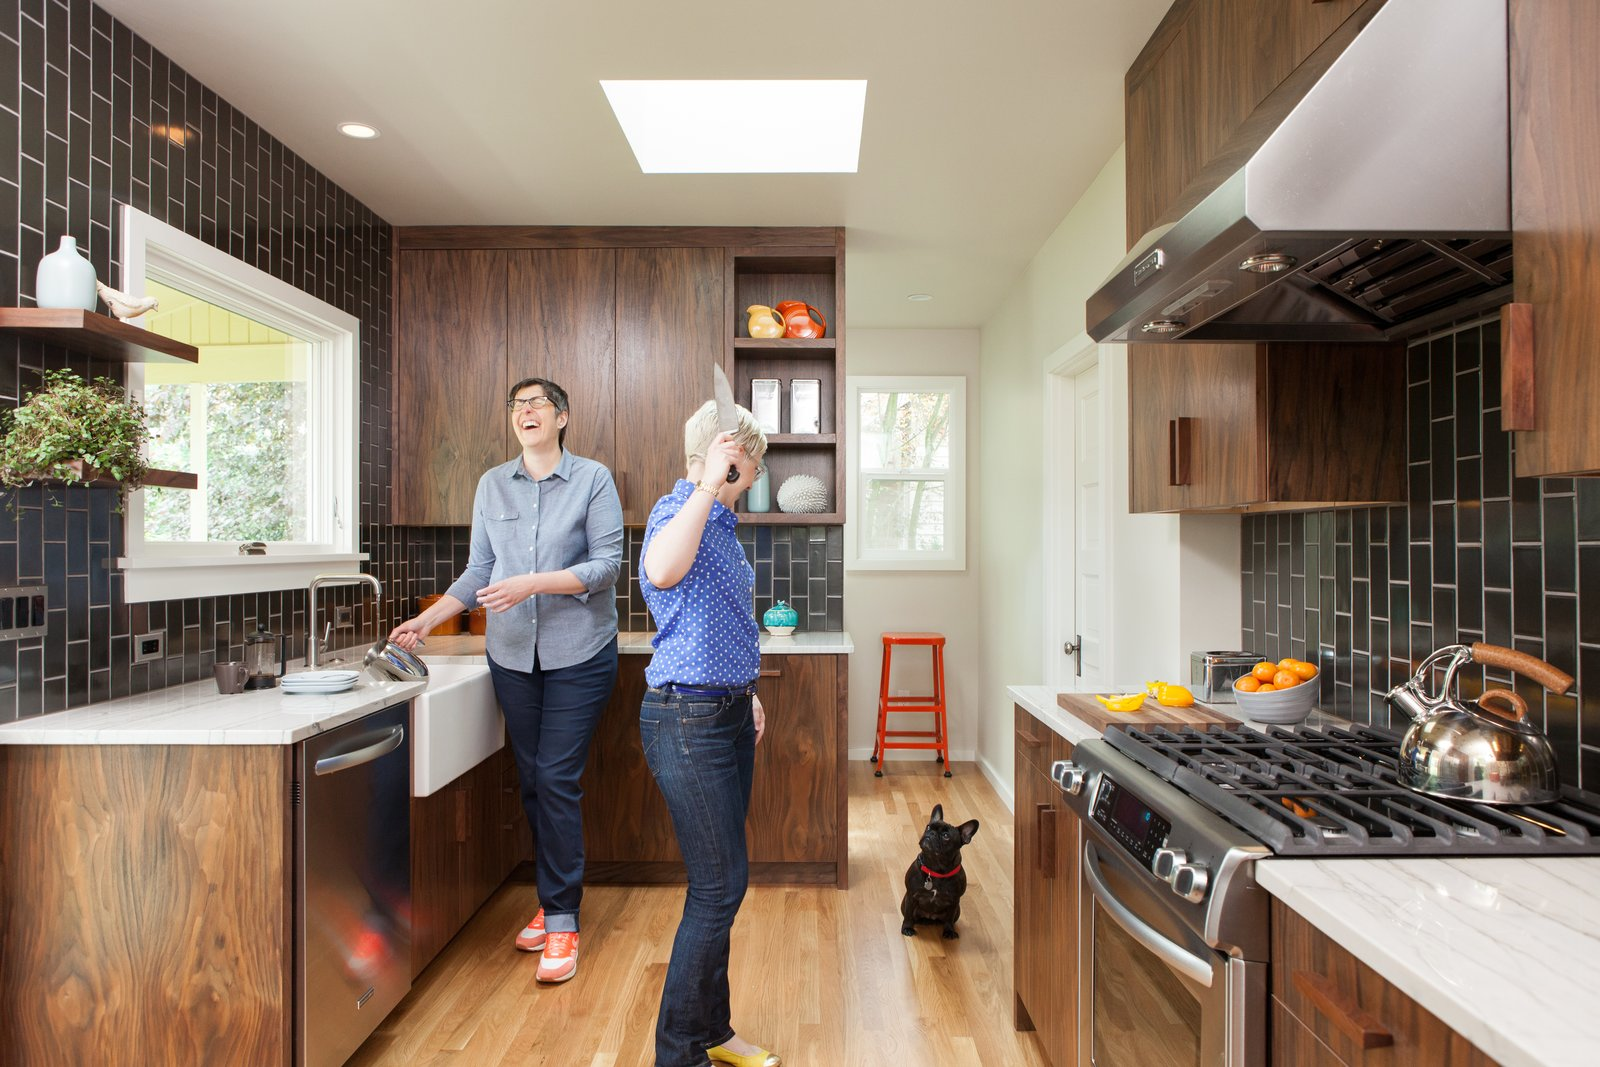 Tall, dark, and handsome: We aimed for midcentury-inspired design, while respecting the long lines and existing layout of this 1909 home. Tagged: Kitchen, Quartzite Counter, Wood Cabinet, Medium Hardwood Floor, Ceramic Tile Backsplashe, Ceiling Lighting, Range, and Drop In Sink.  Holly + Magda by Howells Architecture + Design